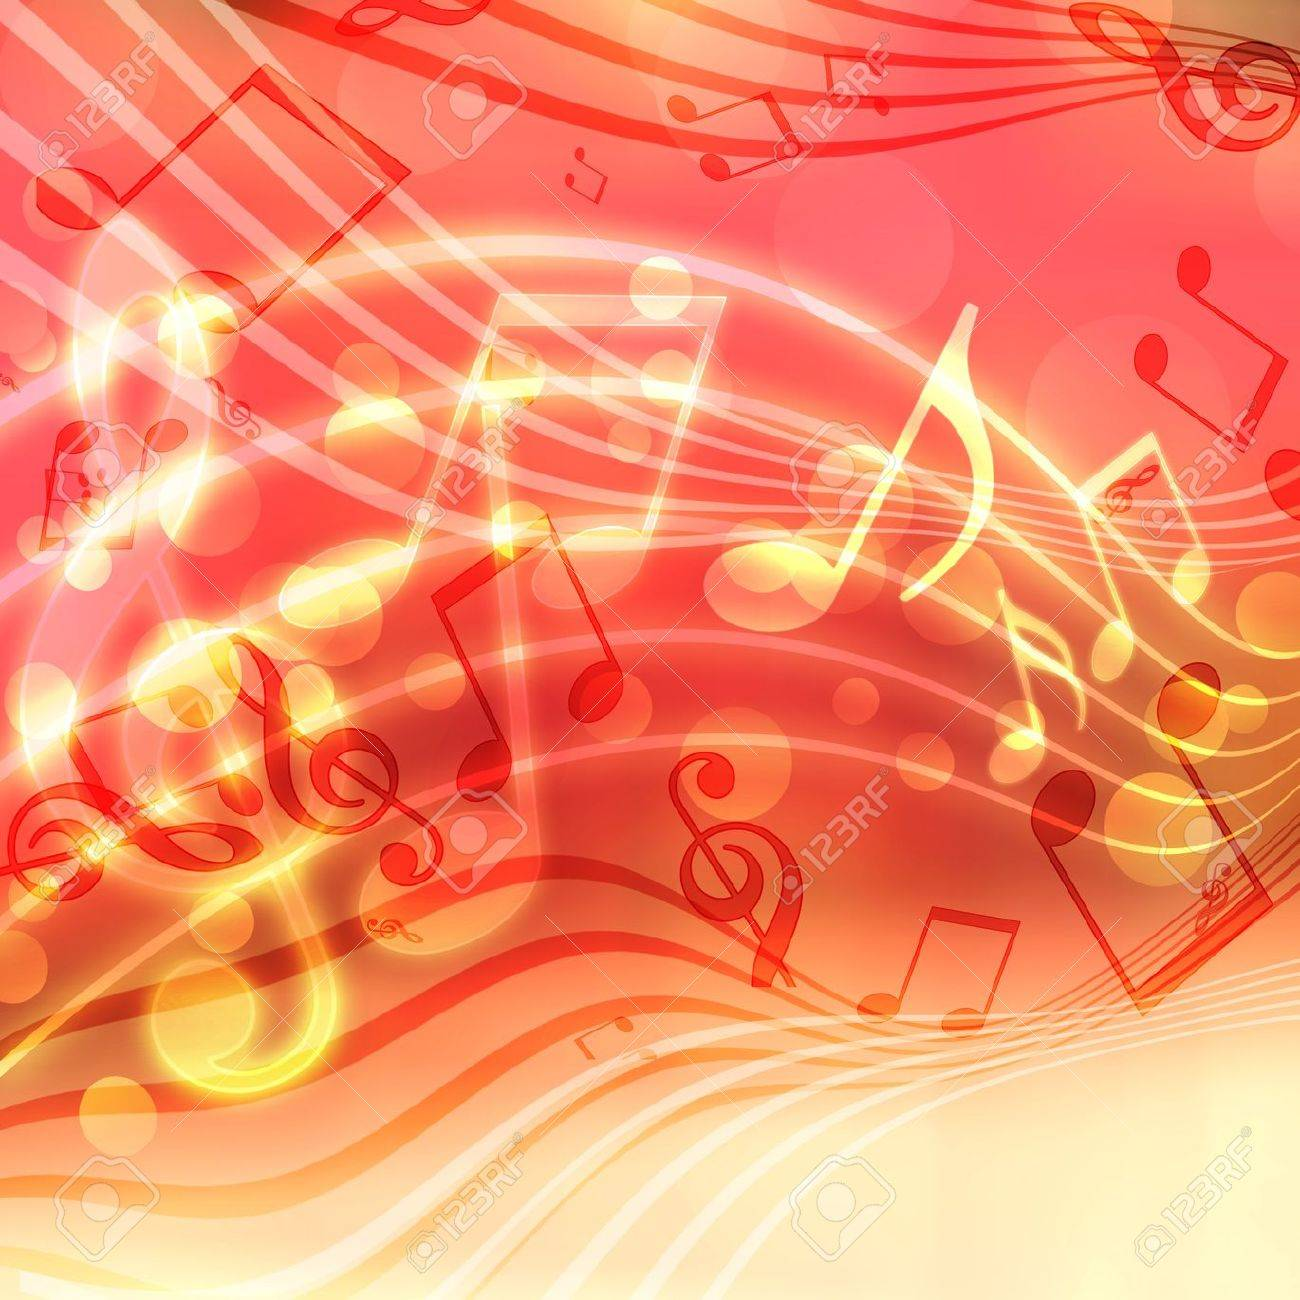 abstract musical background with blurred lights Stock Photo - 16395512